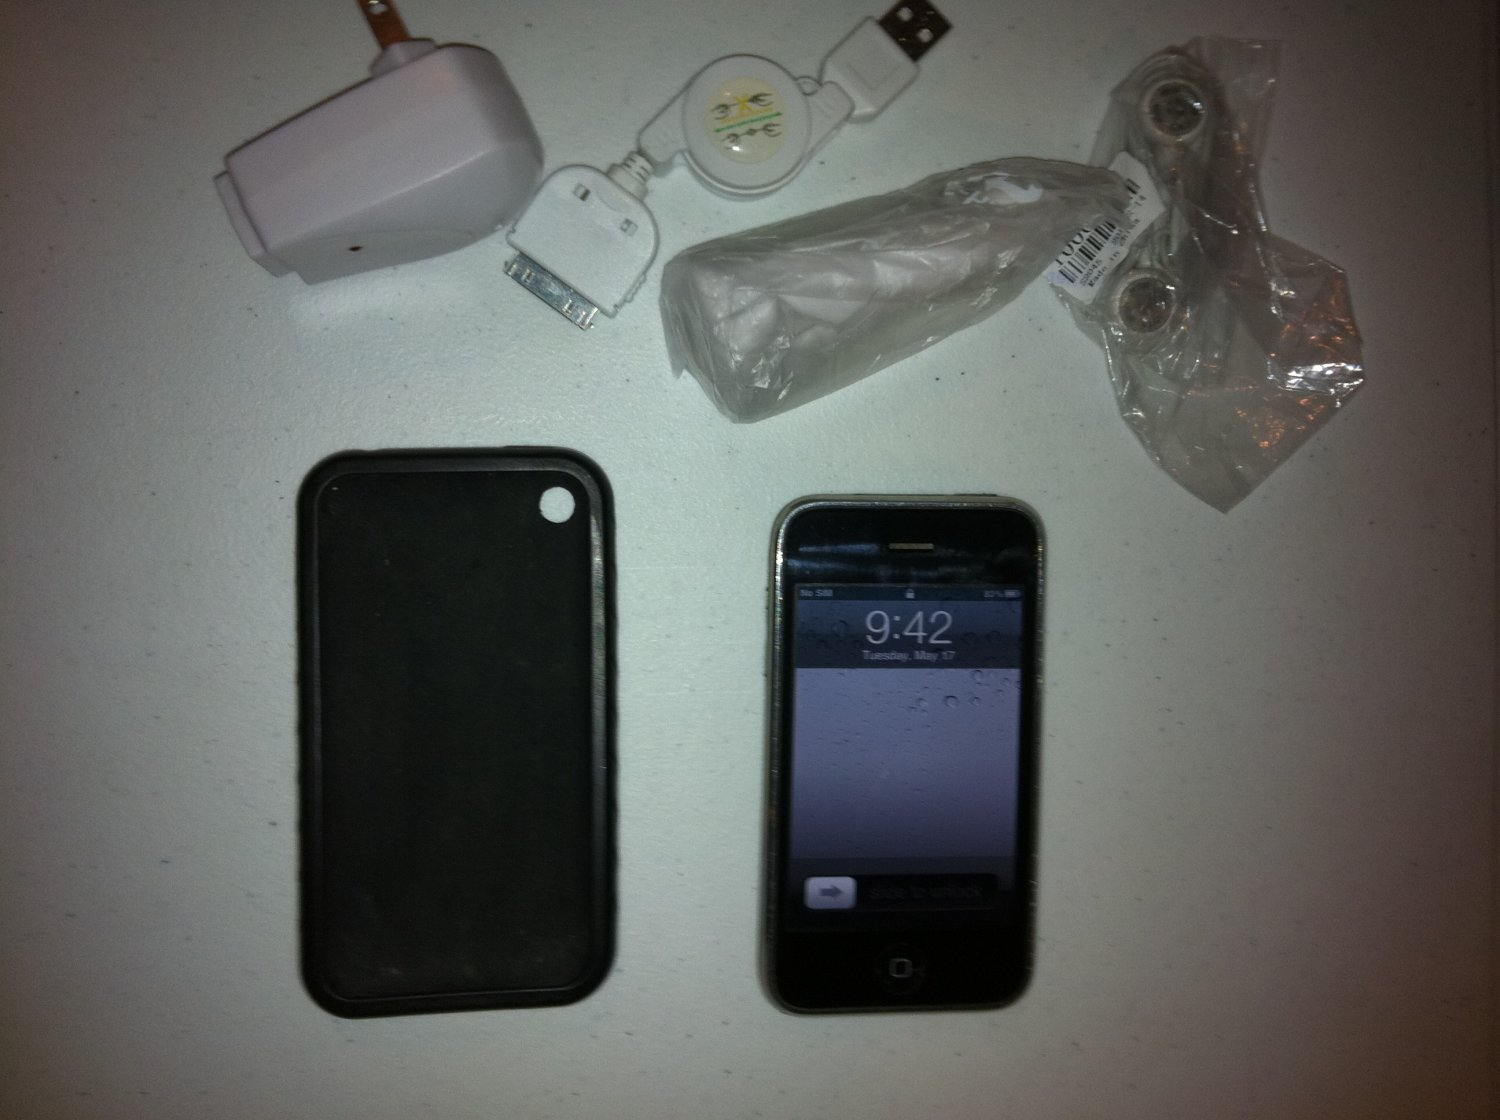 iPhone 3gs 8gb (AT&T) Fast Insured Shipping